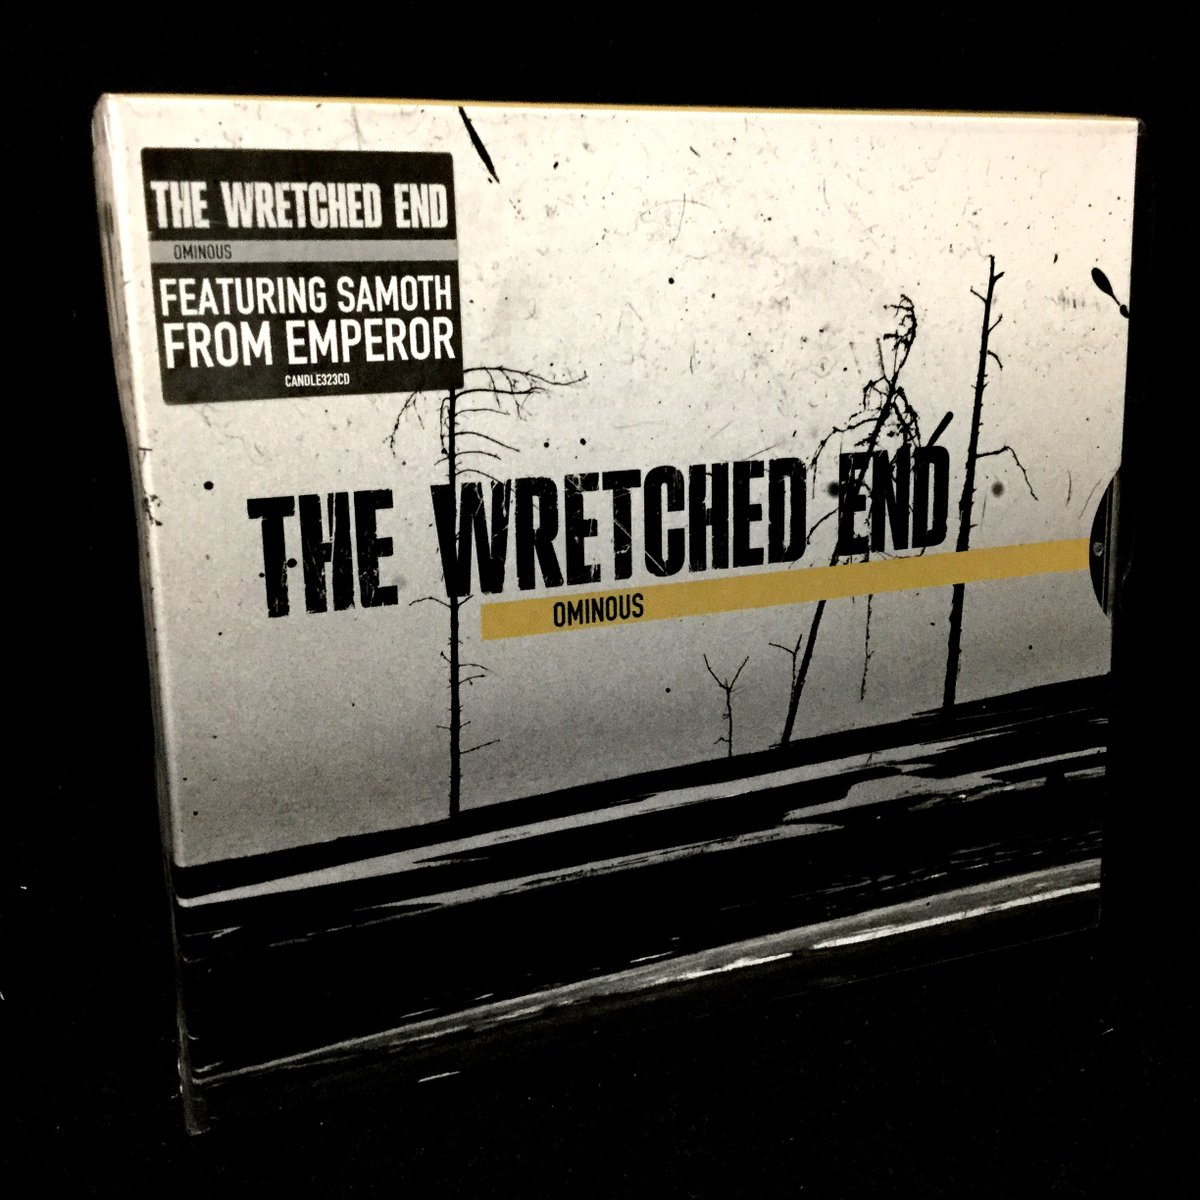 10th ANNIVERSARY!!!!!!!!!!!!!!!!!!!!!!!!!!!!!!! THE WRETCHED END / Ominous [October 25th, 2010 MA,discogs] https://t.co/FFZeZEbUSz